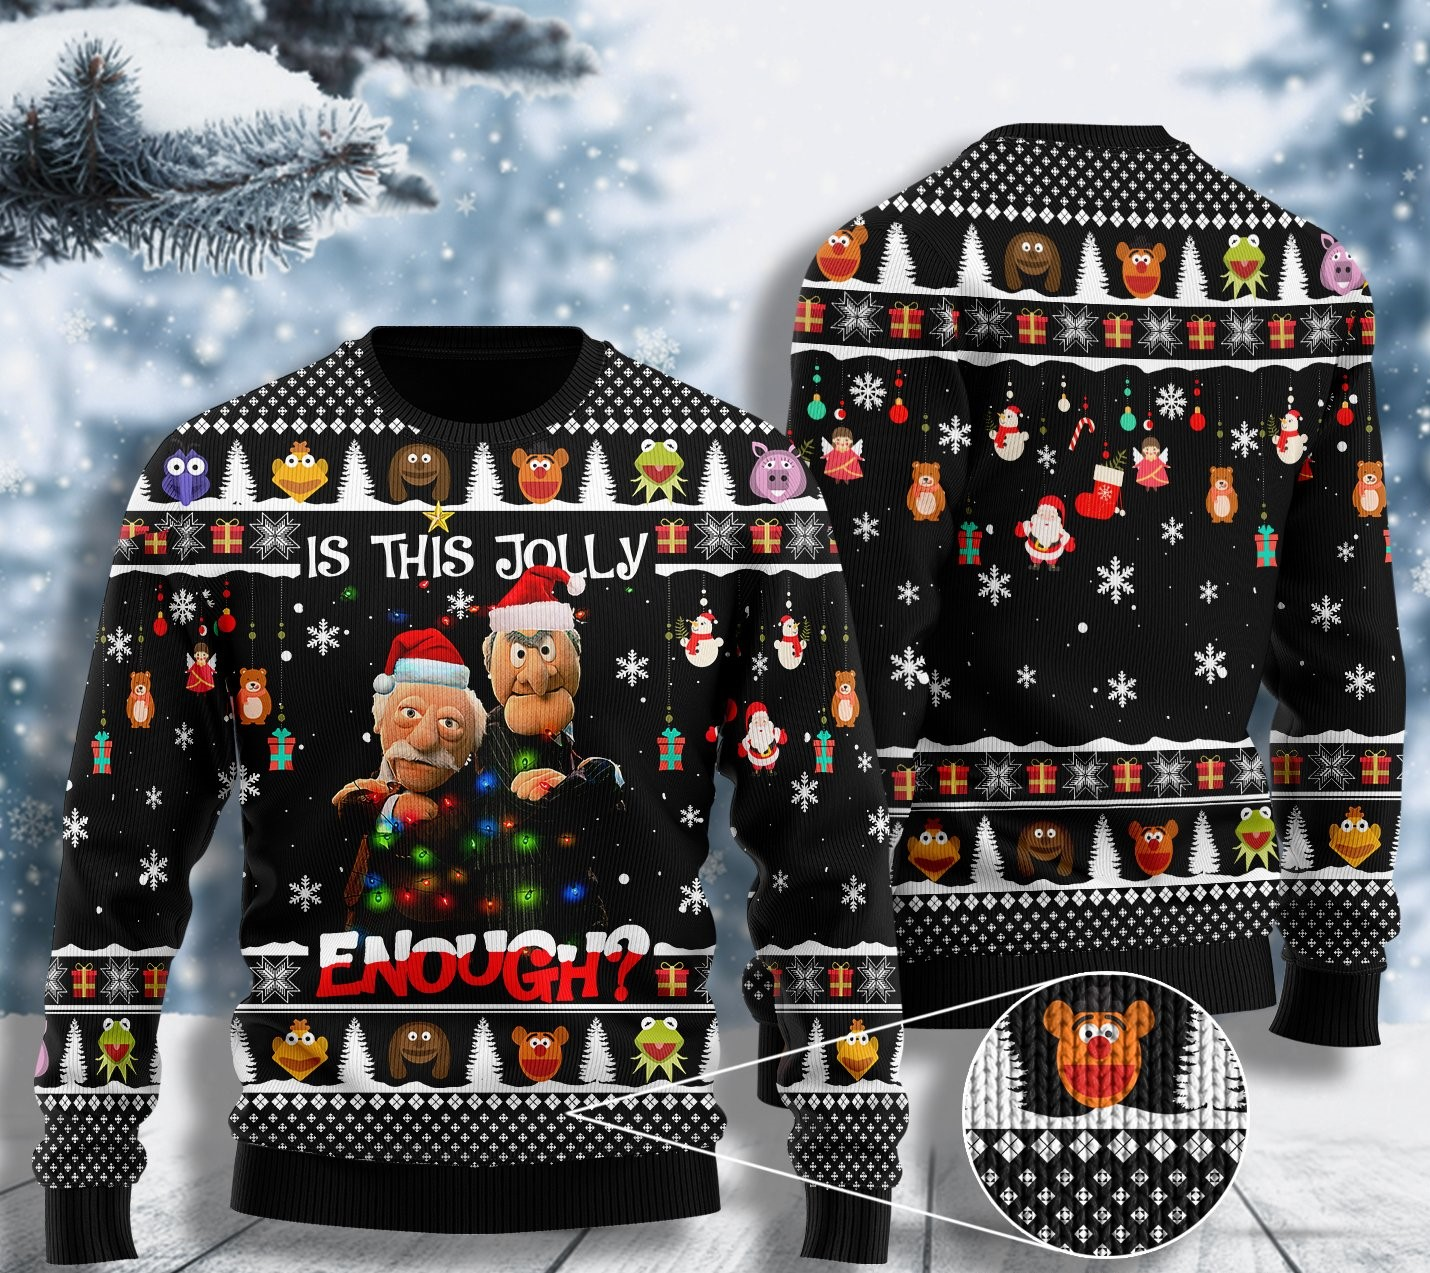 comedy the thing about hecklers is this jolly enough ugly christmas sweater 2 - Copy